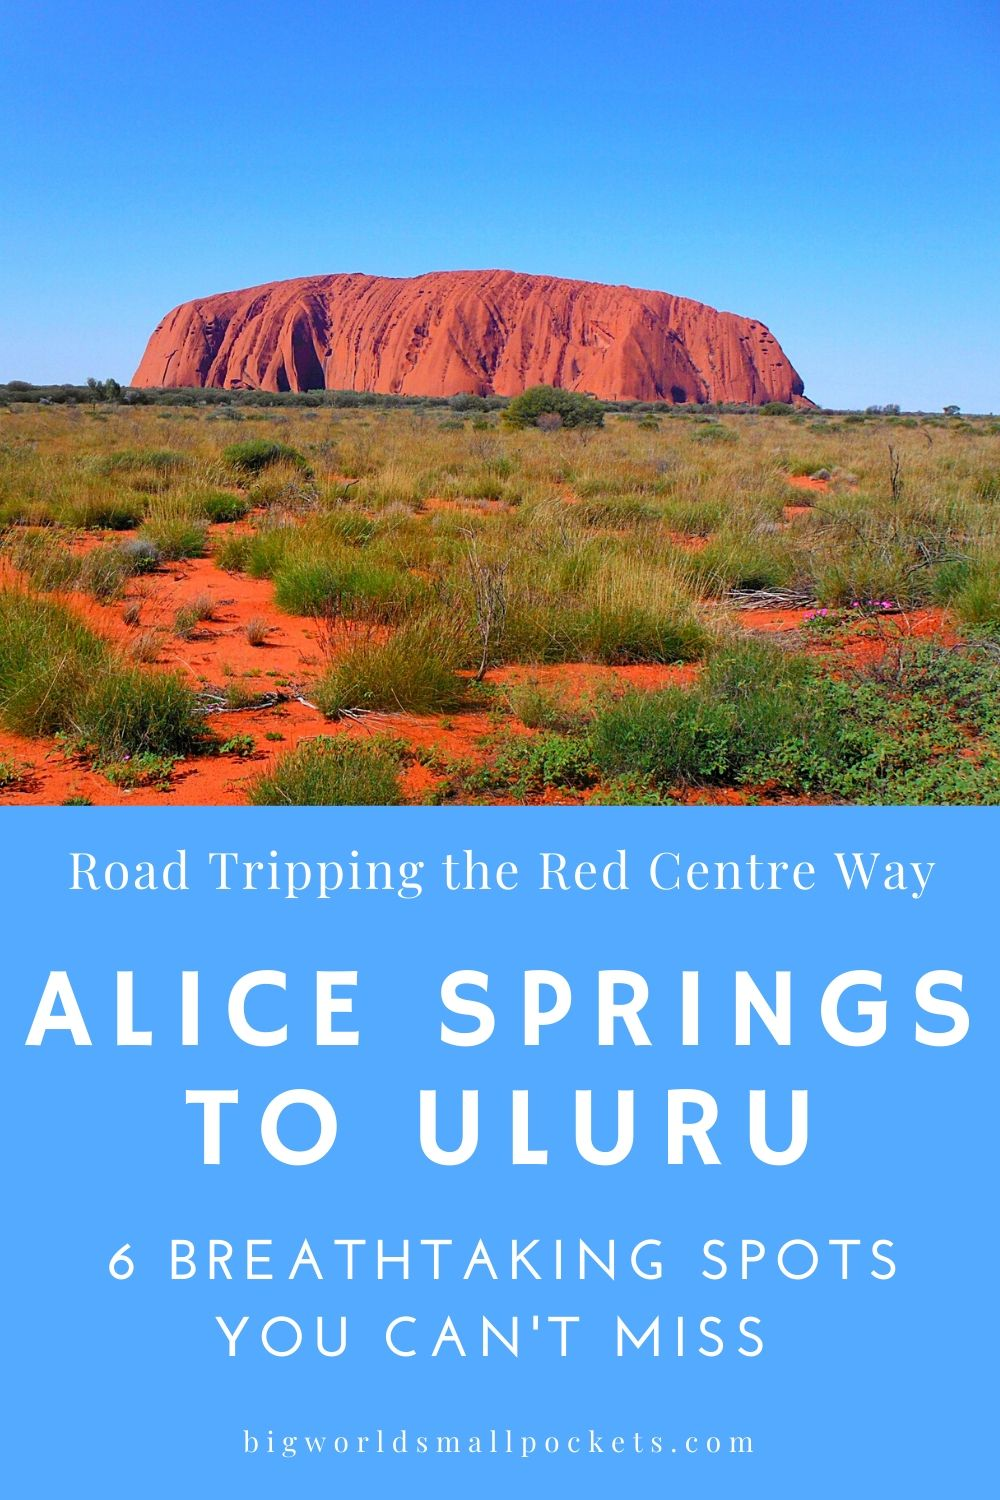 6 Best Spots To Visit When Road Tripping Australia's Red Centre Way